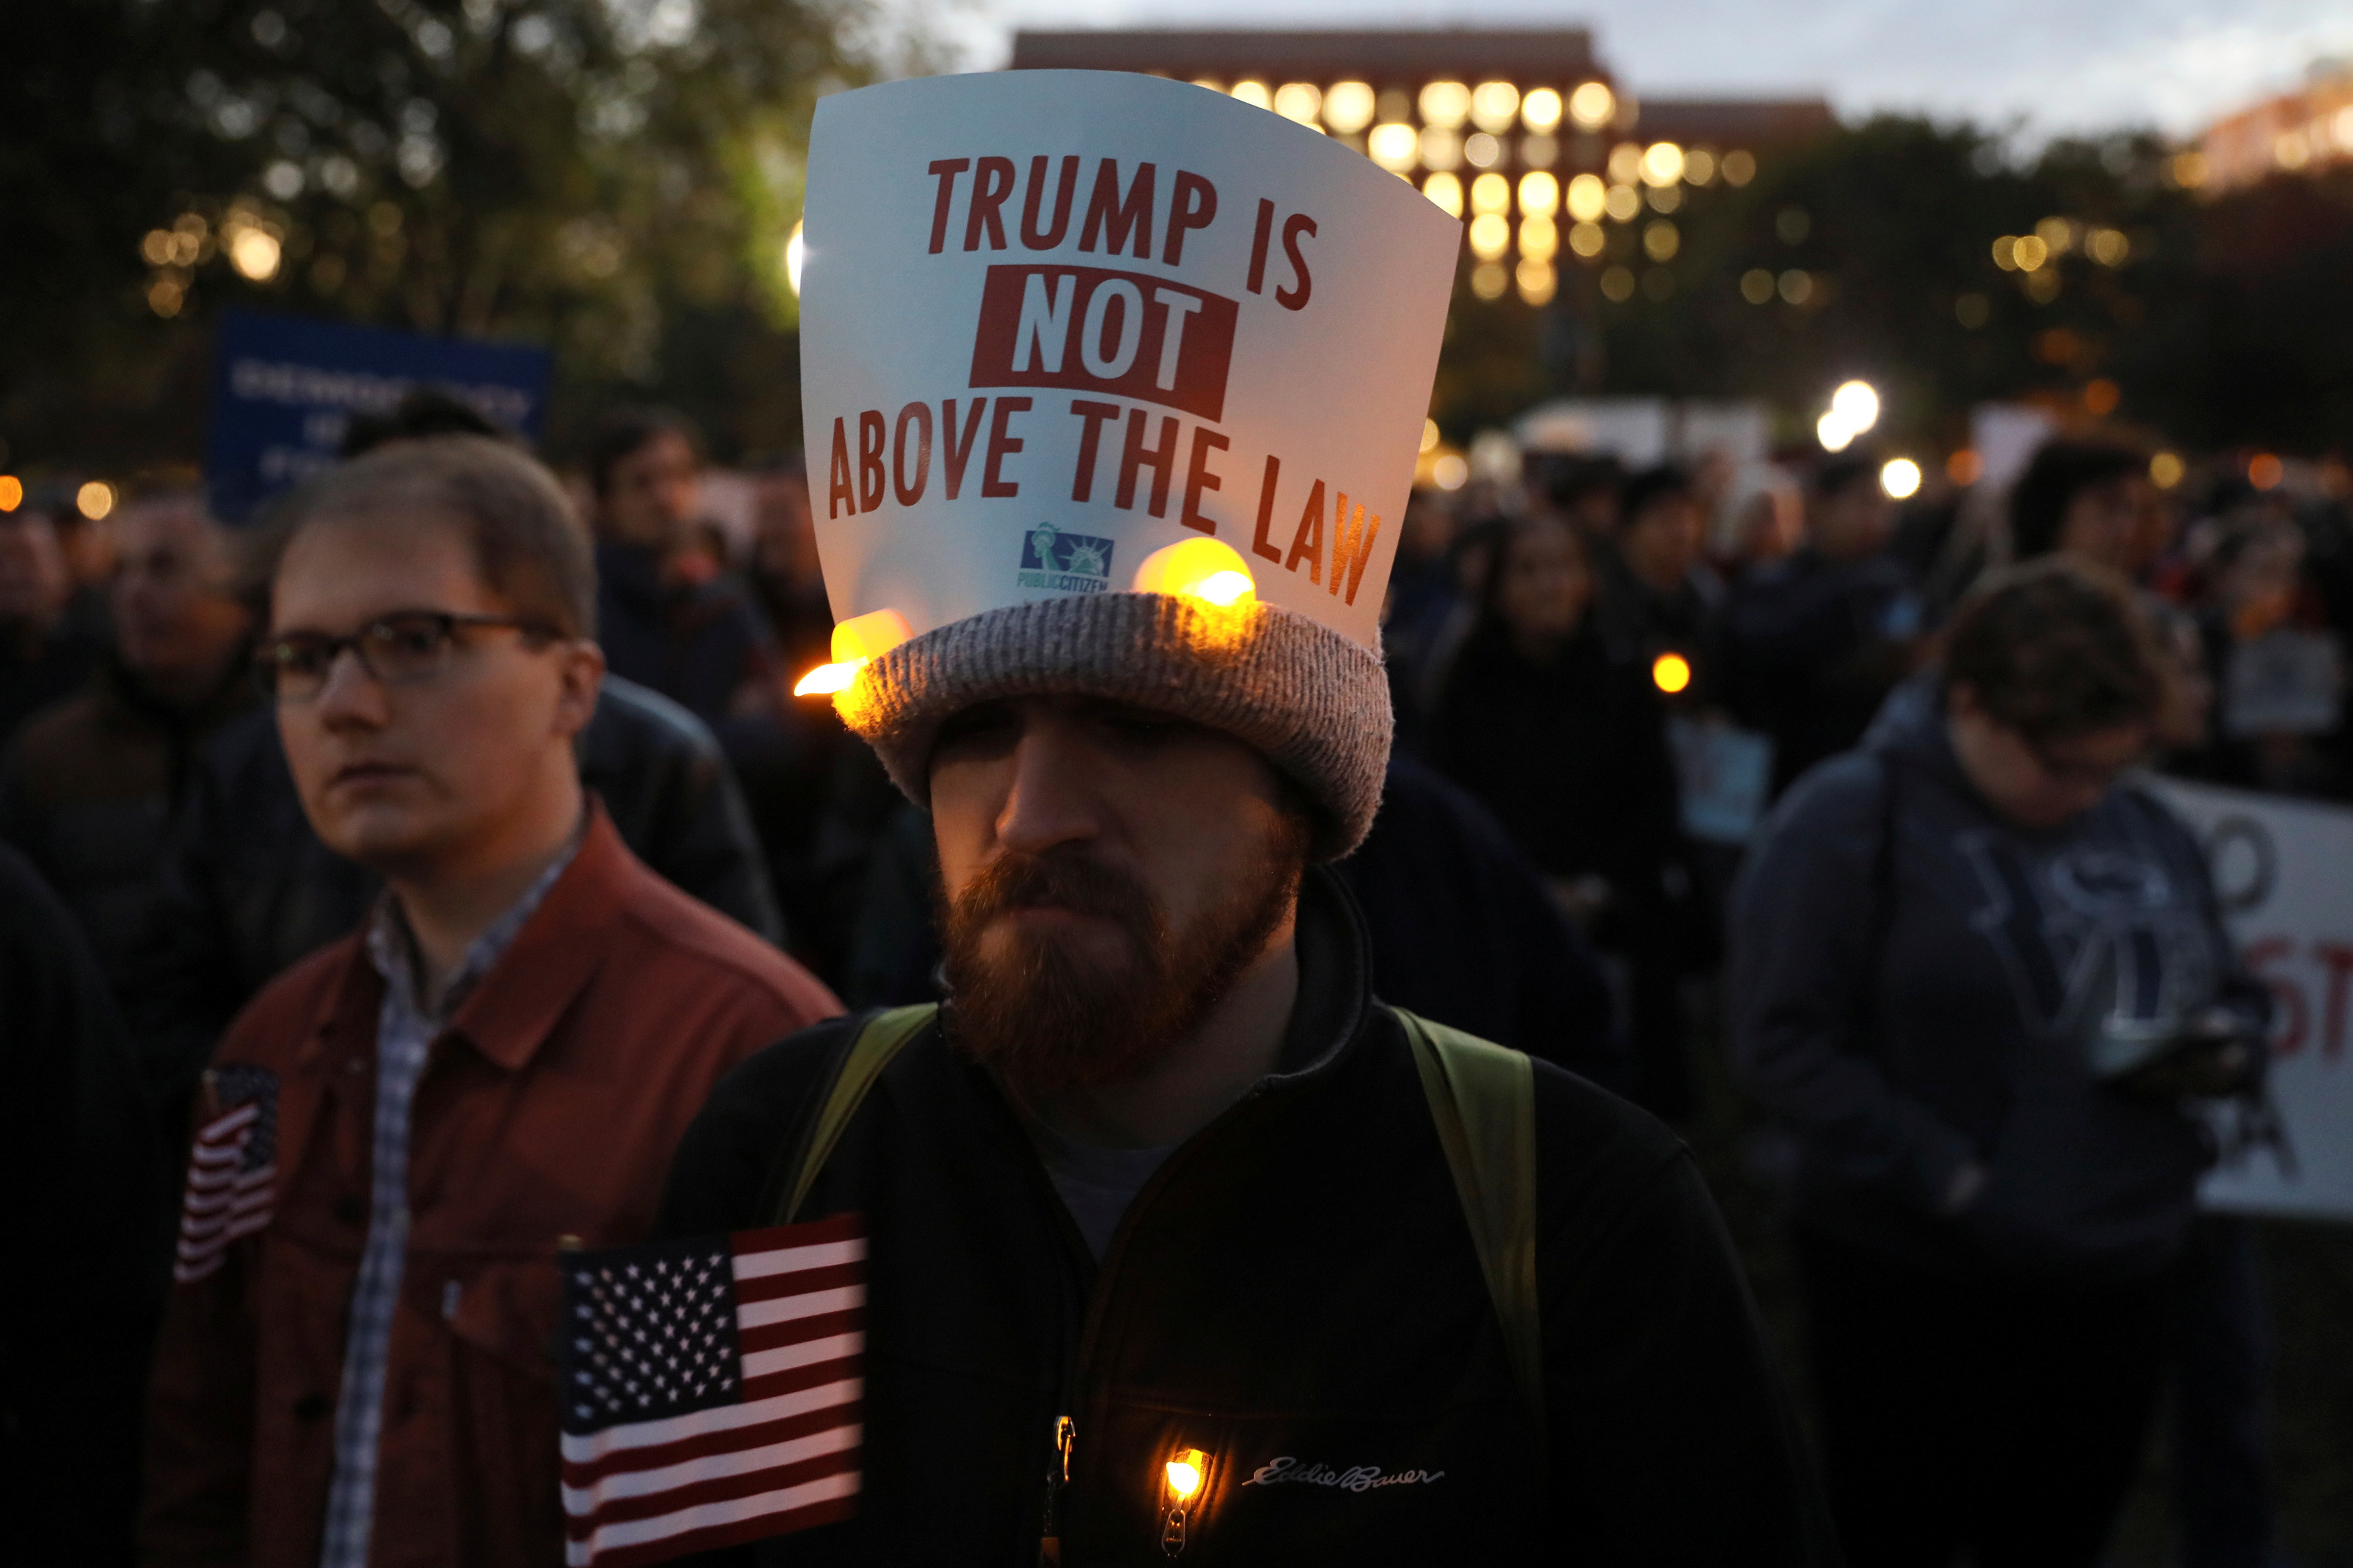 Protesters rally to demand the U.S. government to protect the investigation led by Special Counsel Robert Mueller into alleged Russian meddling in the 2016 Trump campaign, outside the White House in Washington, Nov. 8, 2018.